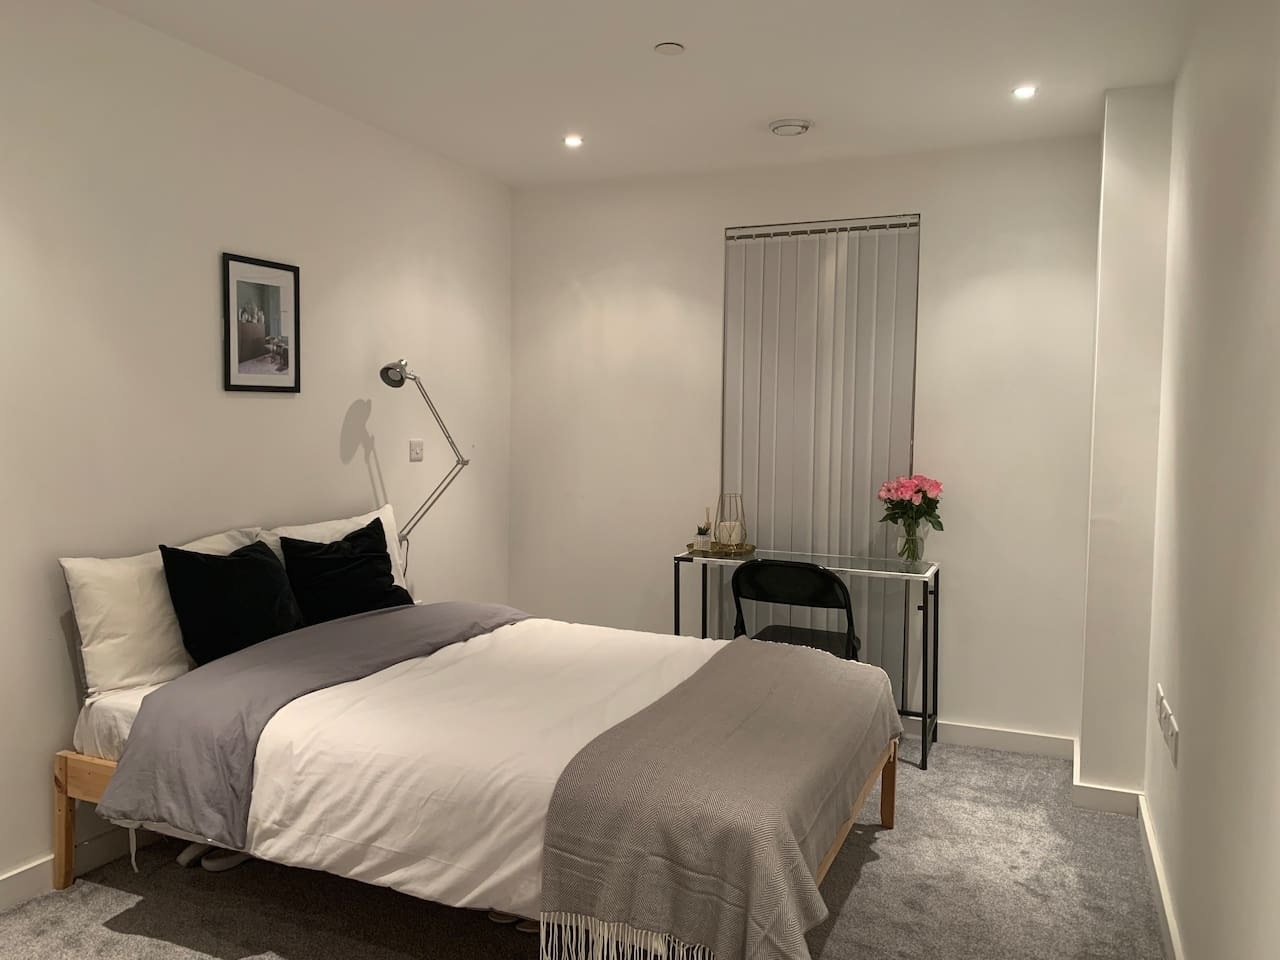 Beautifully minimalistic, stylish and clean room, complete with built in wardrobe and city view.